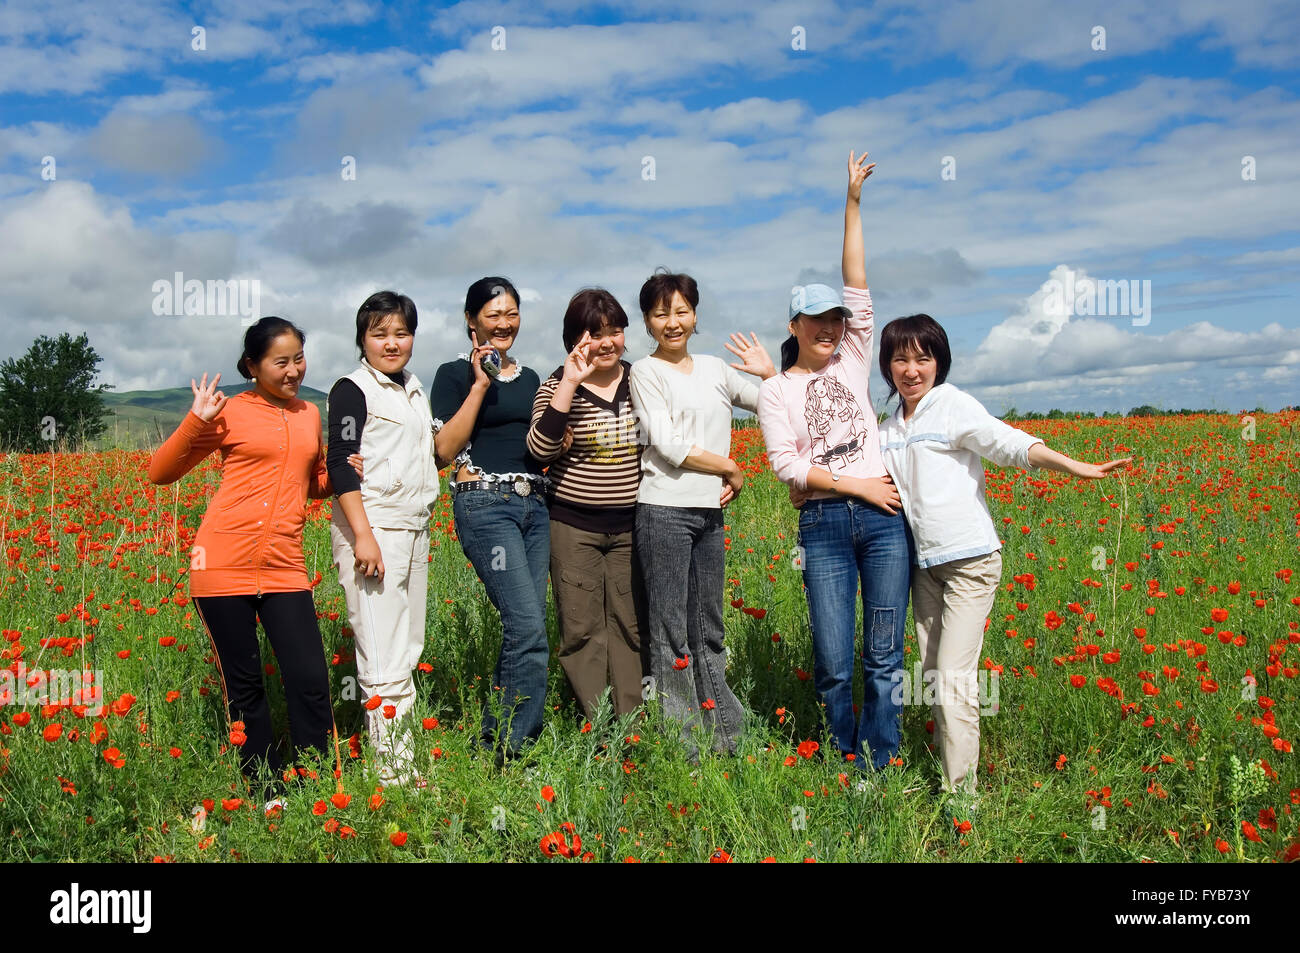 Group of young people in a field of red poppies, Kyrgystan - Stock Image